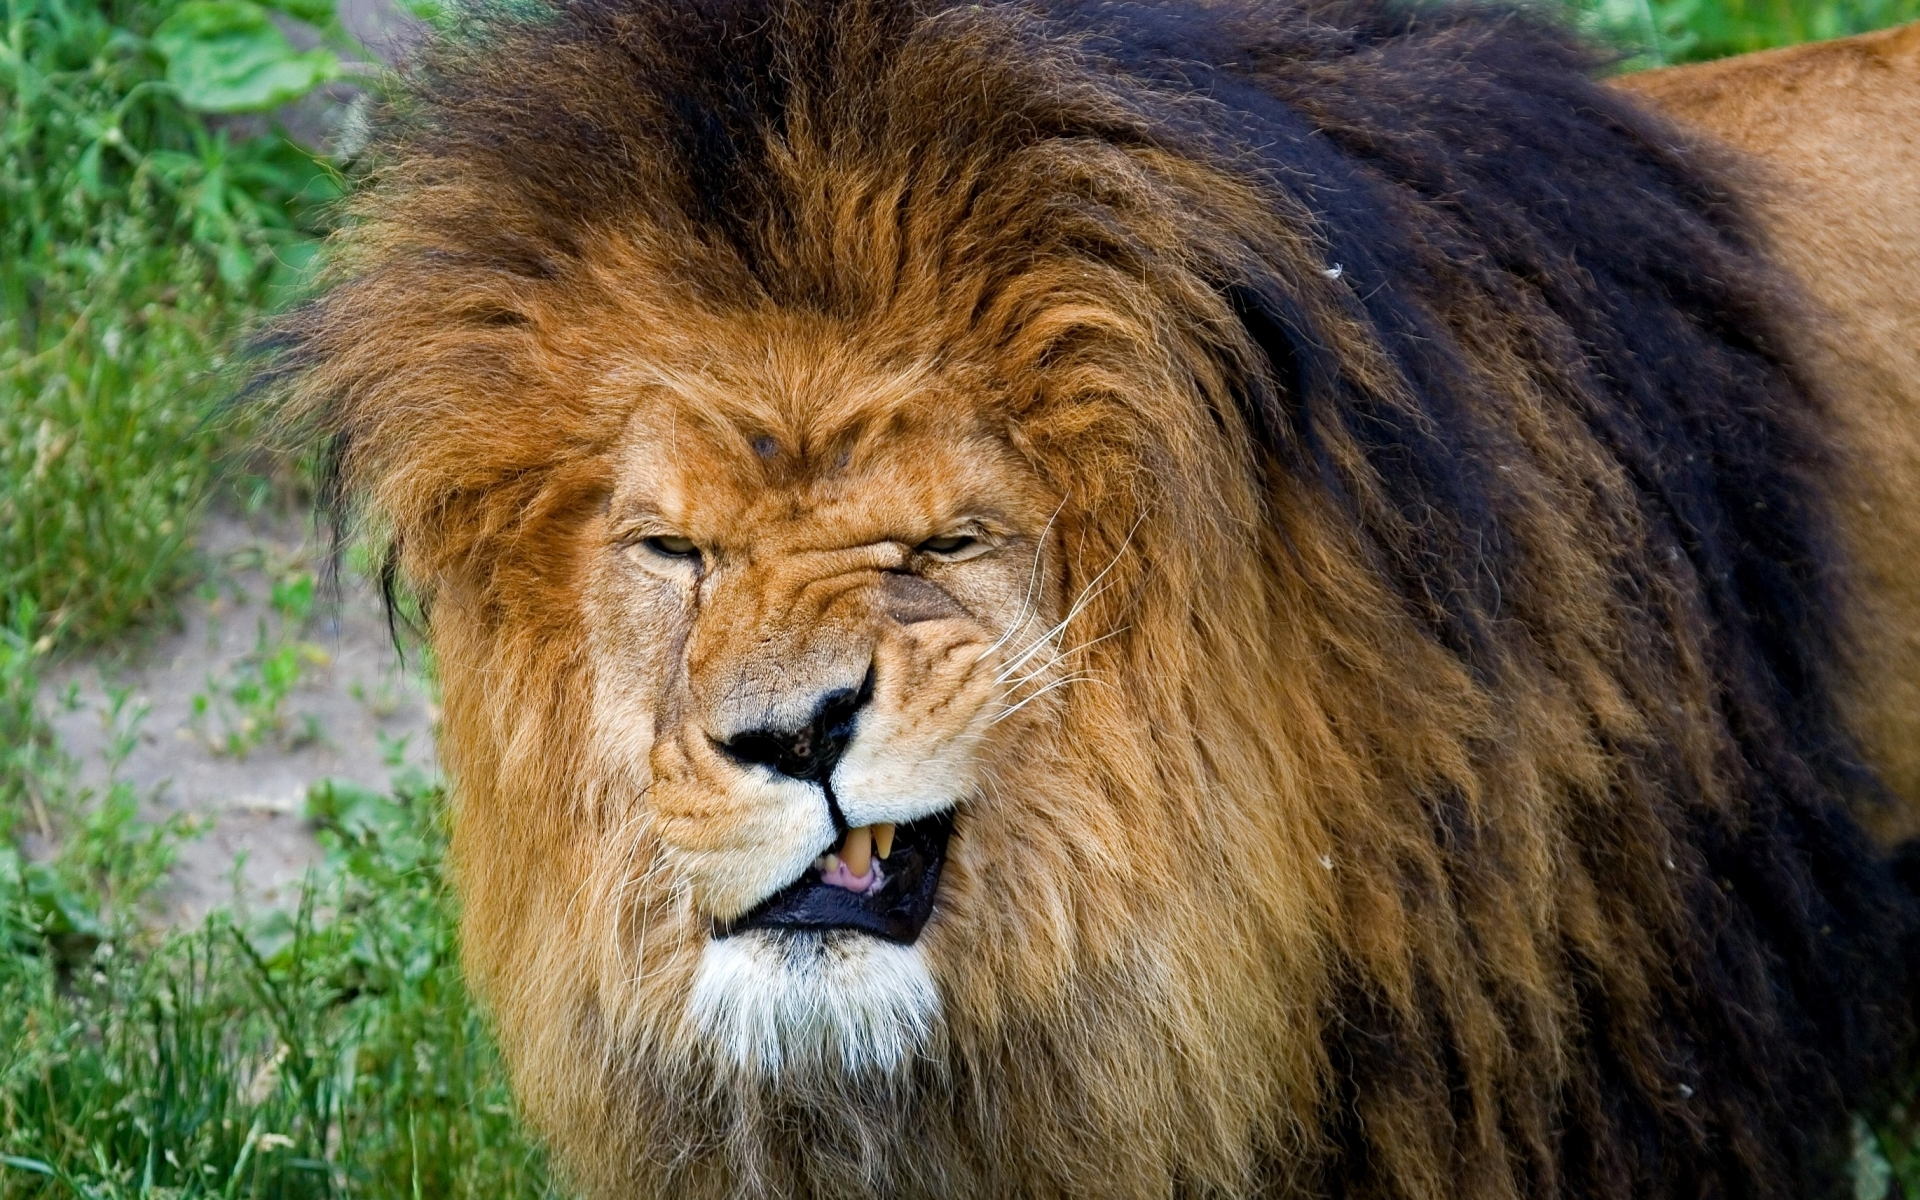 46580 download wallpaper Animals, Lions screensavers and pictures for free